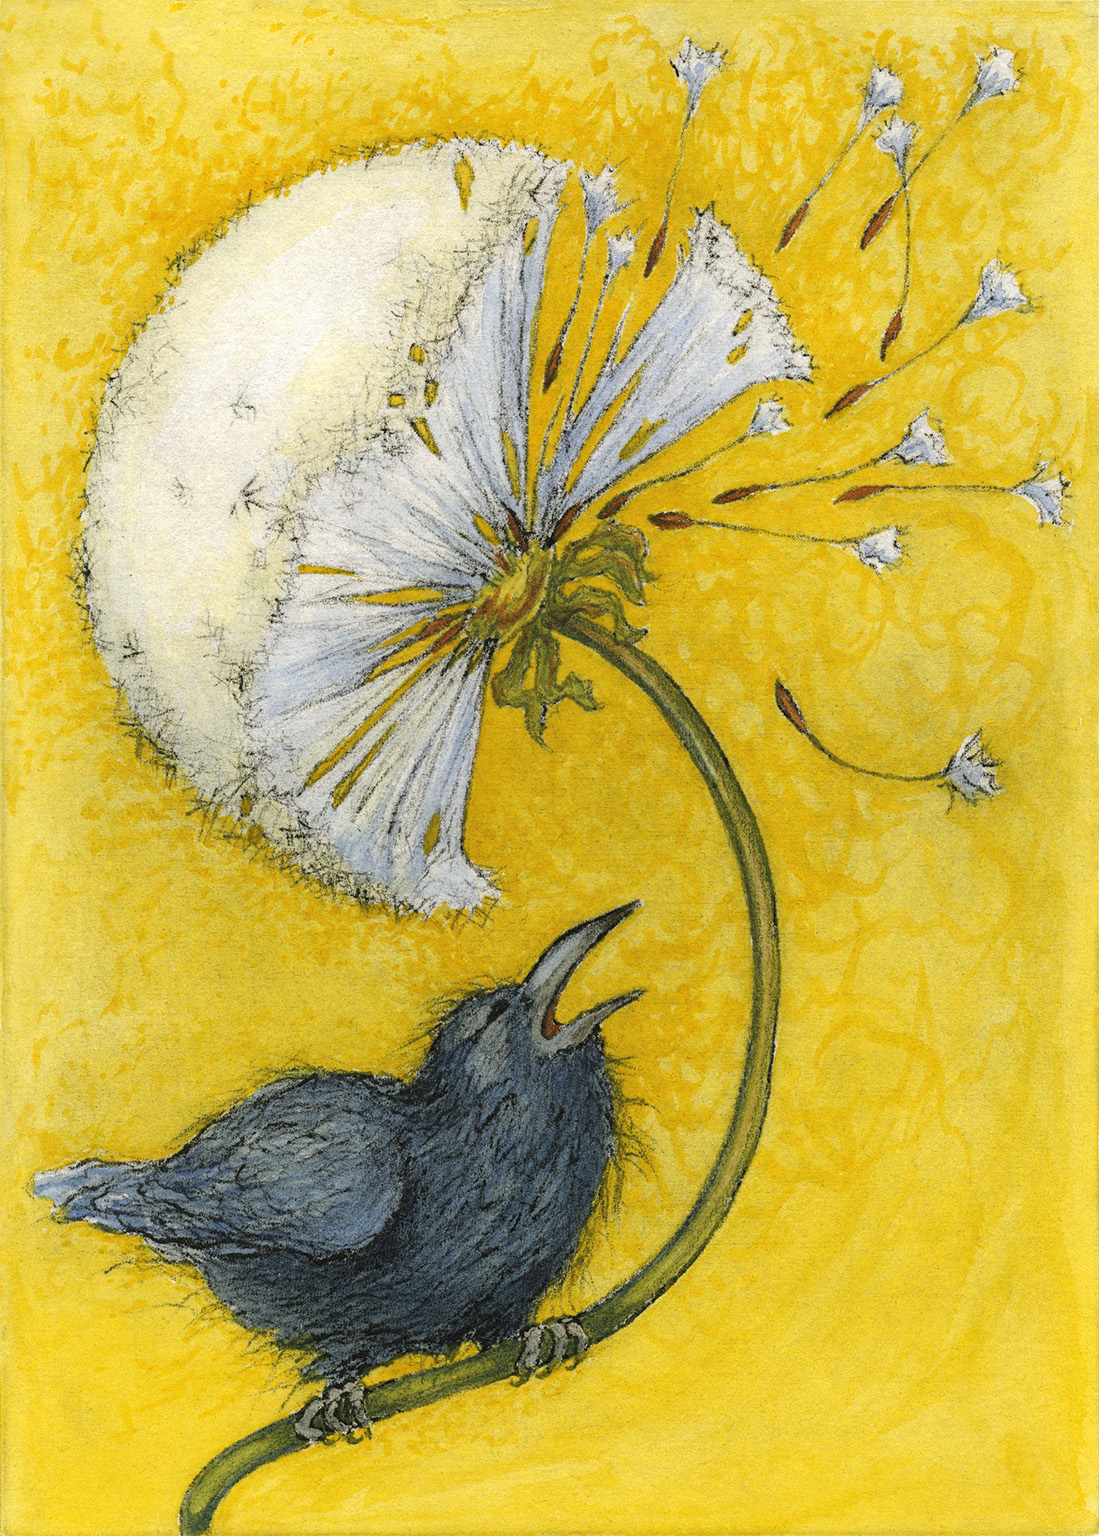 Little Raven's Big Wish - I love the humble dandelion. We enjy a peaceful co-existance. So many folks rail against them, yanking 'em out, heaping poison upon them (and our environment). Well, I tell ya what… they've been around since the dinosaurs, and will undoubtedly be here long after my demise, so I figger we may as well get along